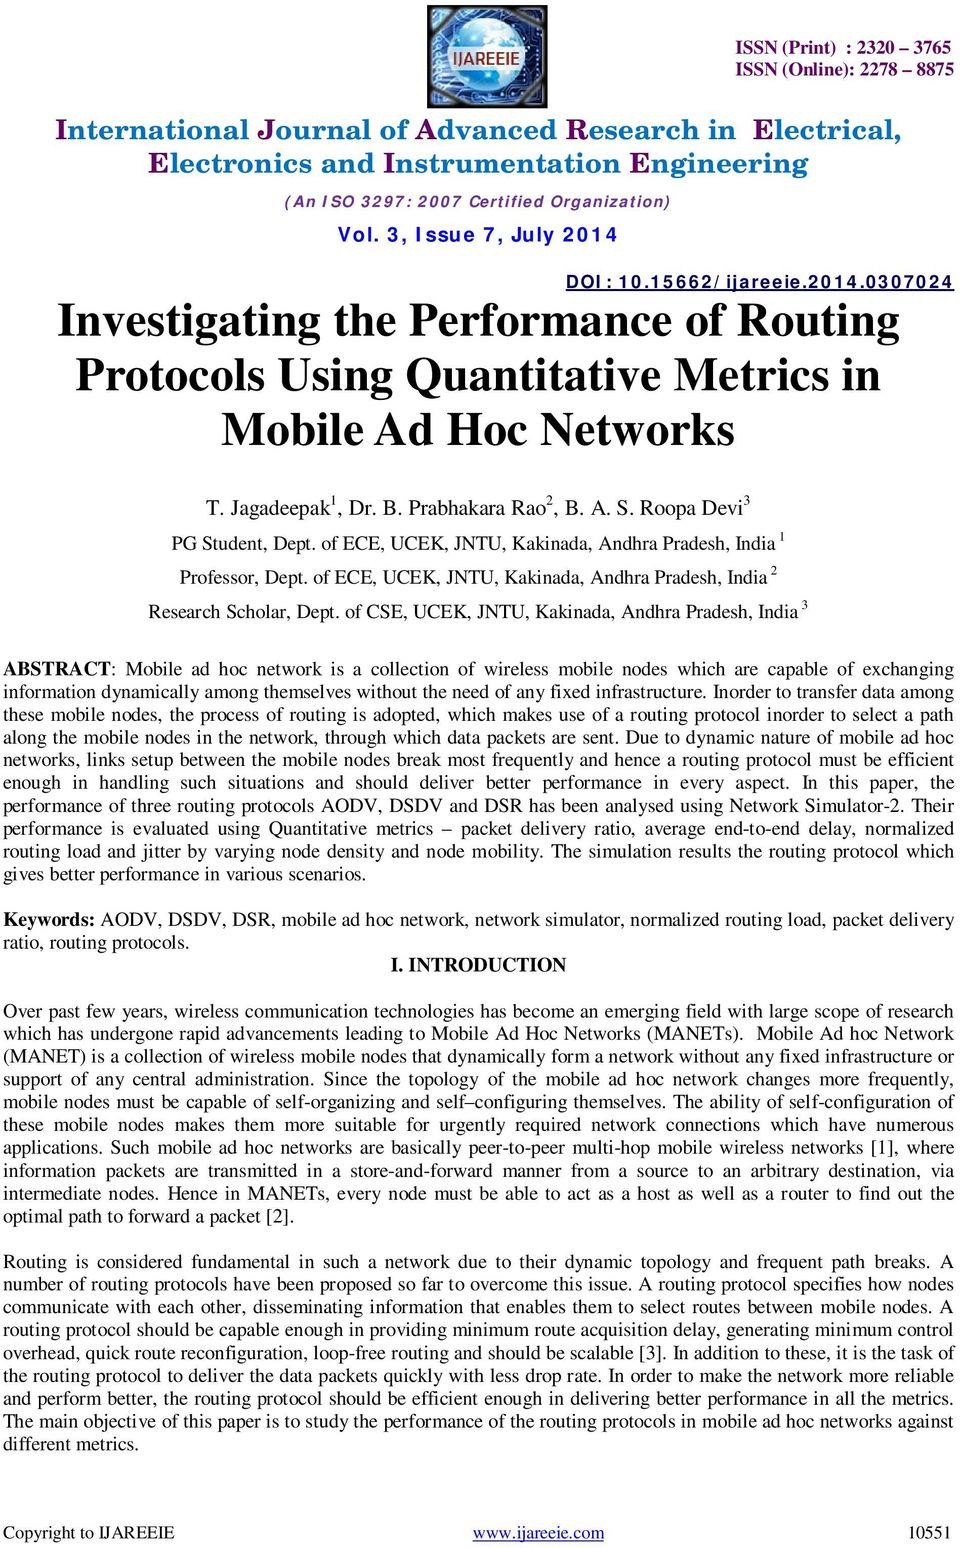 of CSE, UCEK, JNTU, Kakinada, Andhra Pradesh, India 3 ABSTRACT: Mobile ad hoc network is a collection of wireless mobile nodes which are capable of exchanging information dynamically among themselves